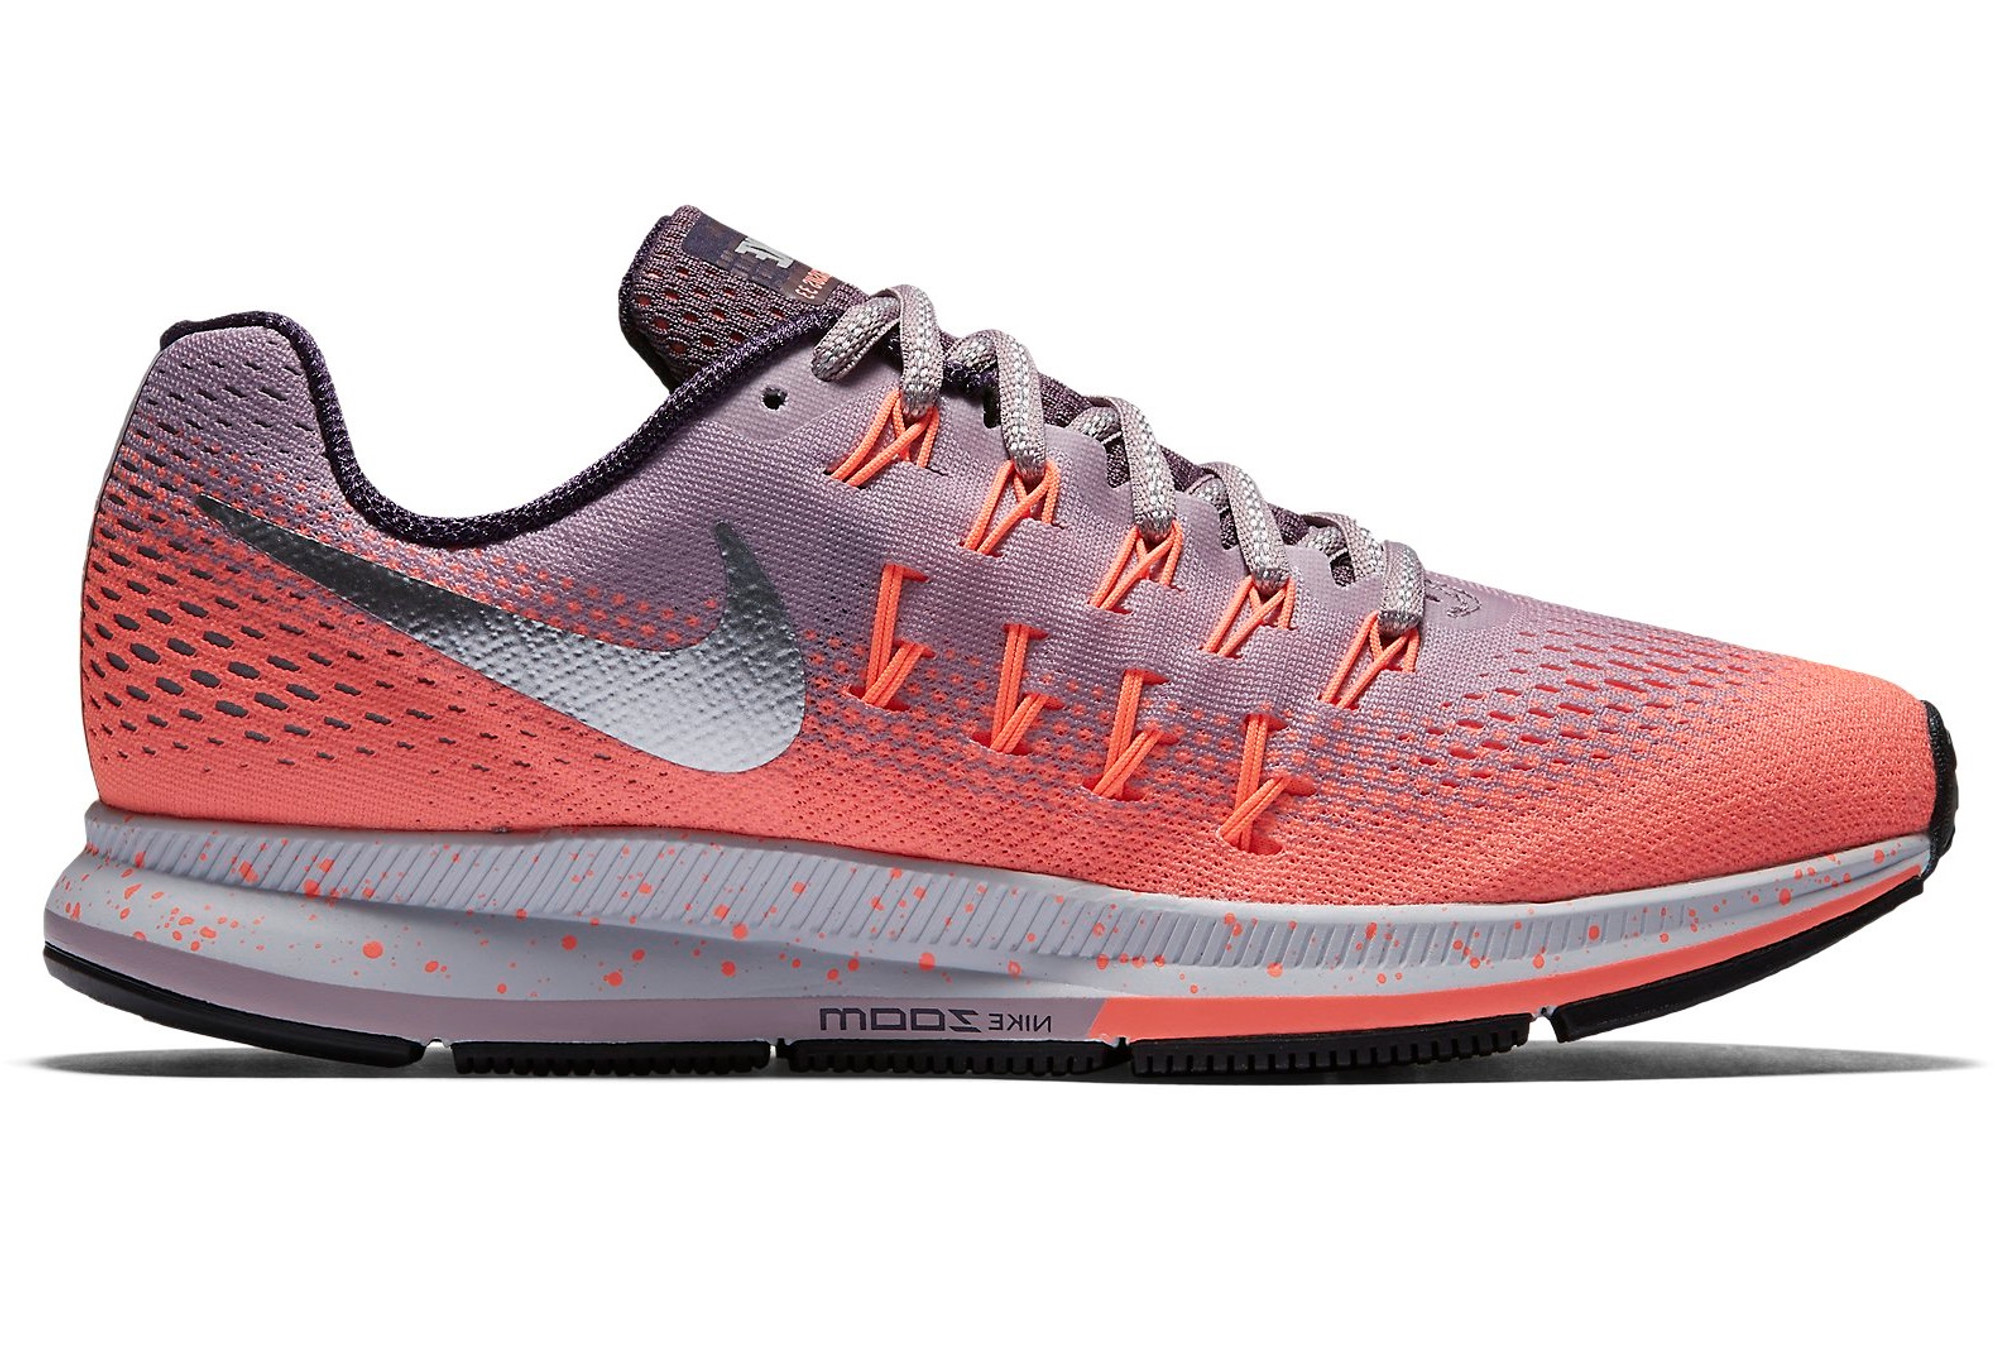 487d3be7aae29 Chaussures de Running Femme Nike AIR ZOOM PEGASUS 33 SHIELD Rose / Violet